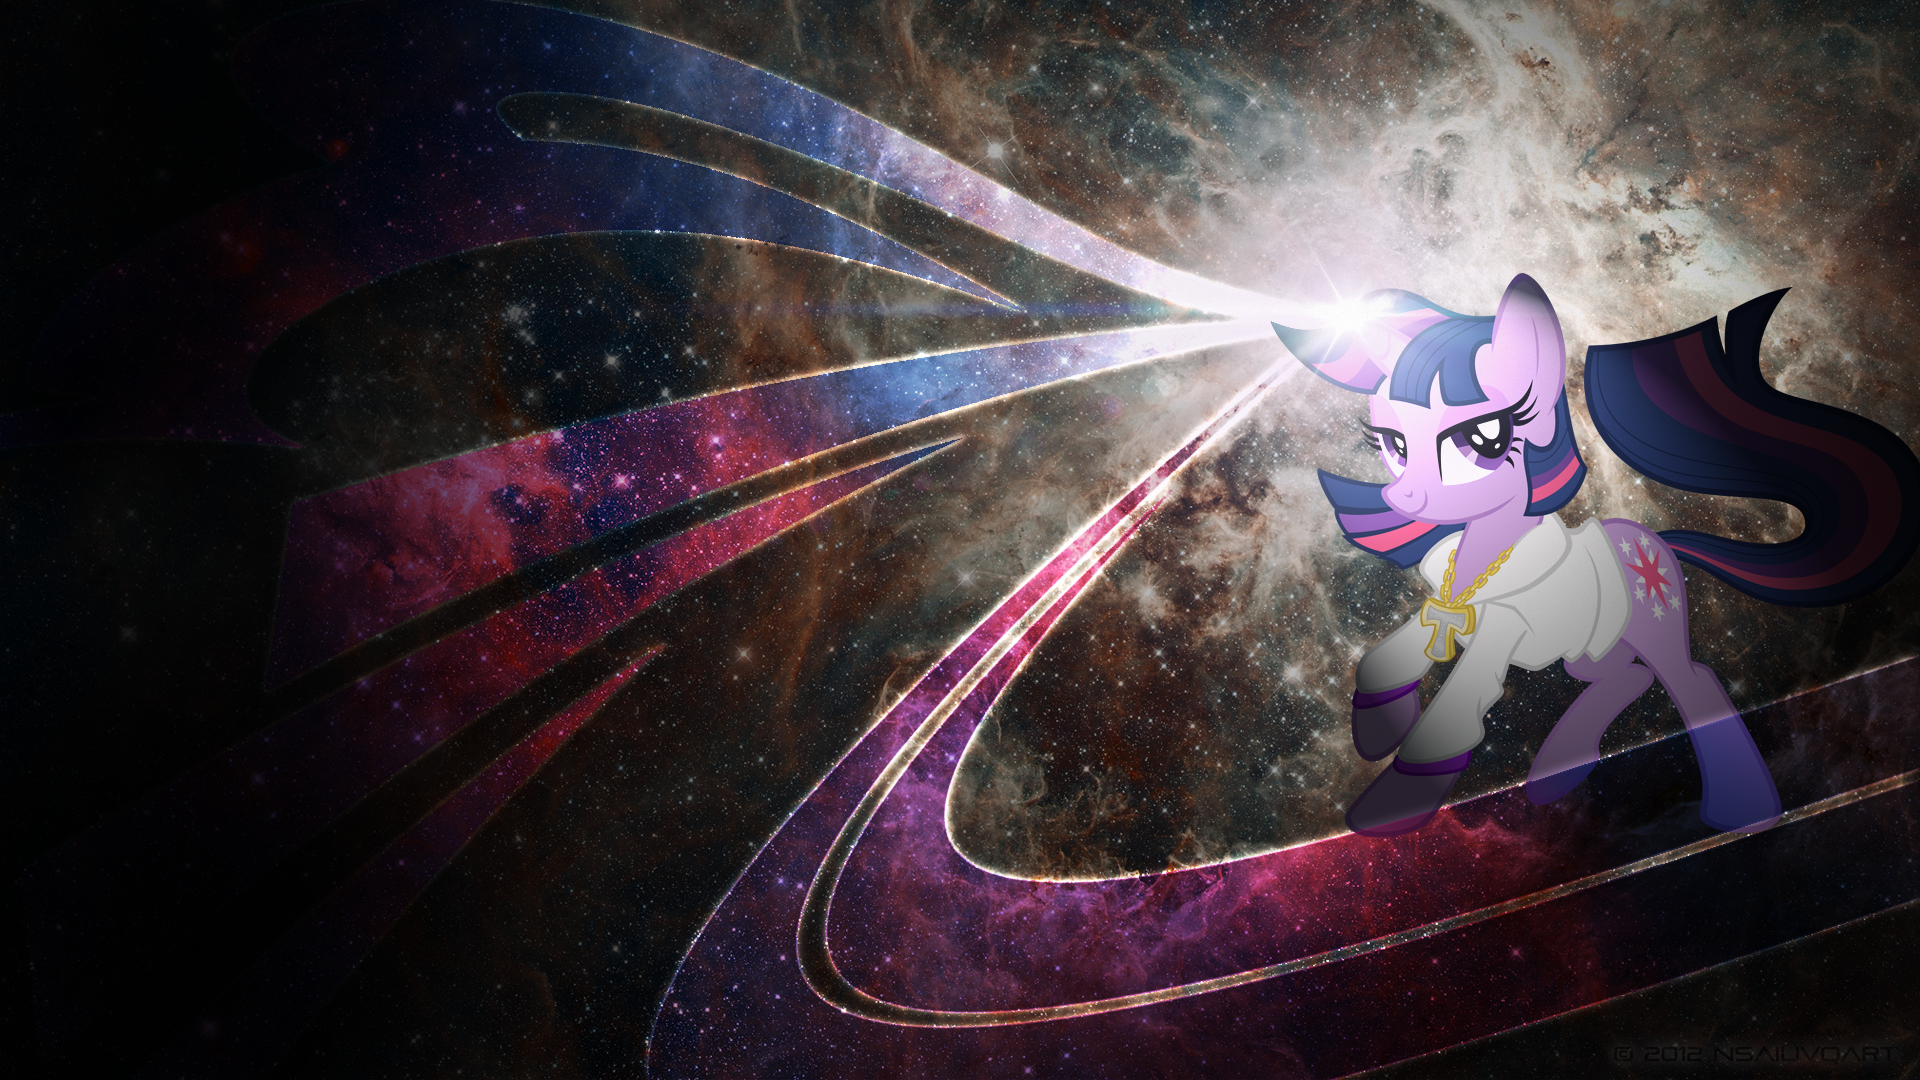 Twilight Spacelicious WP by johnjoseco, nsaiuvqart and tygerbug